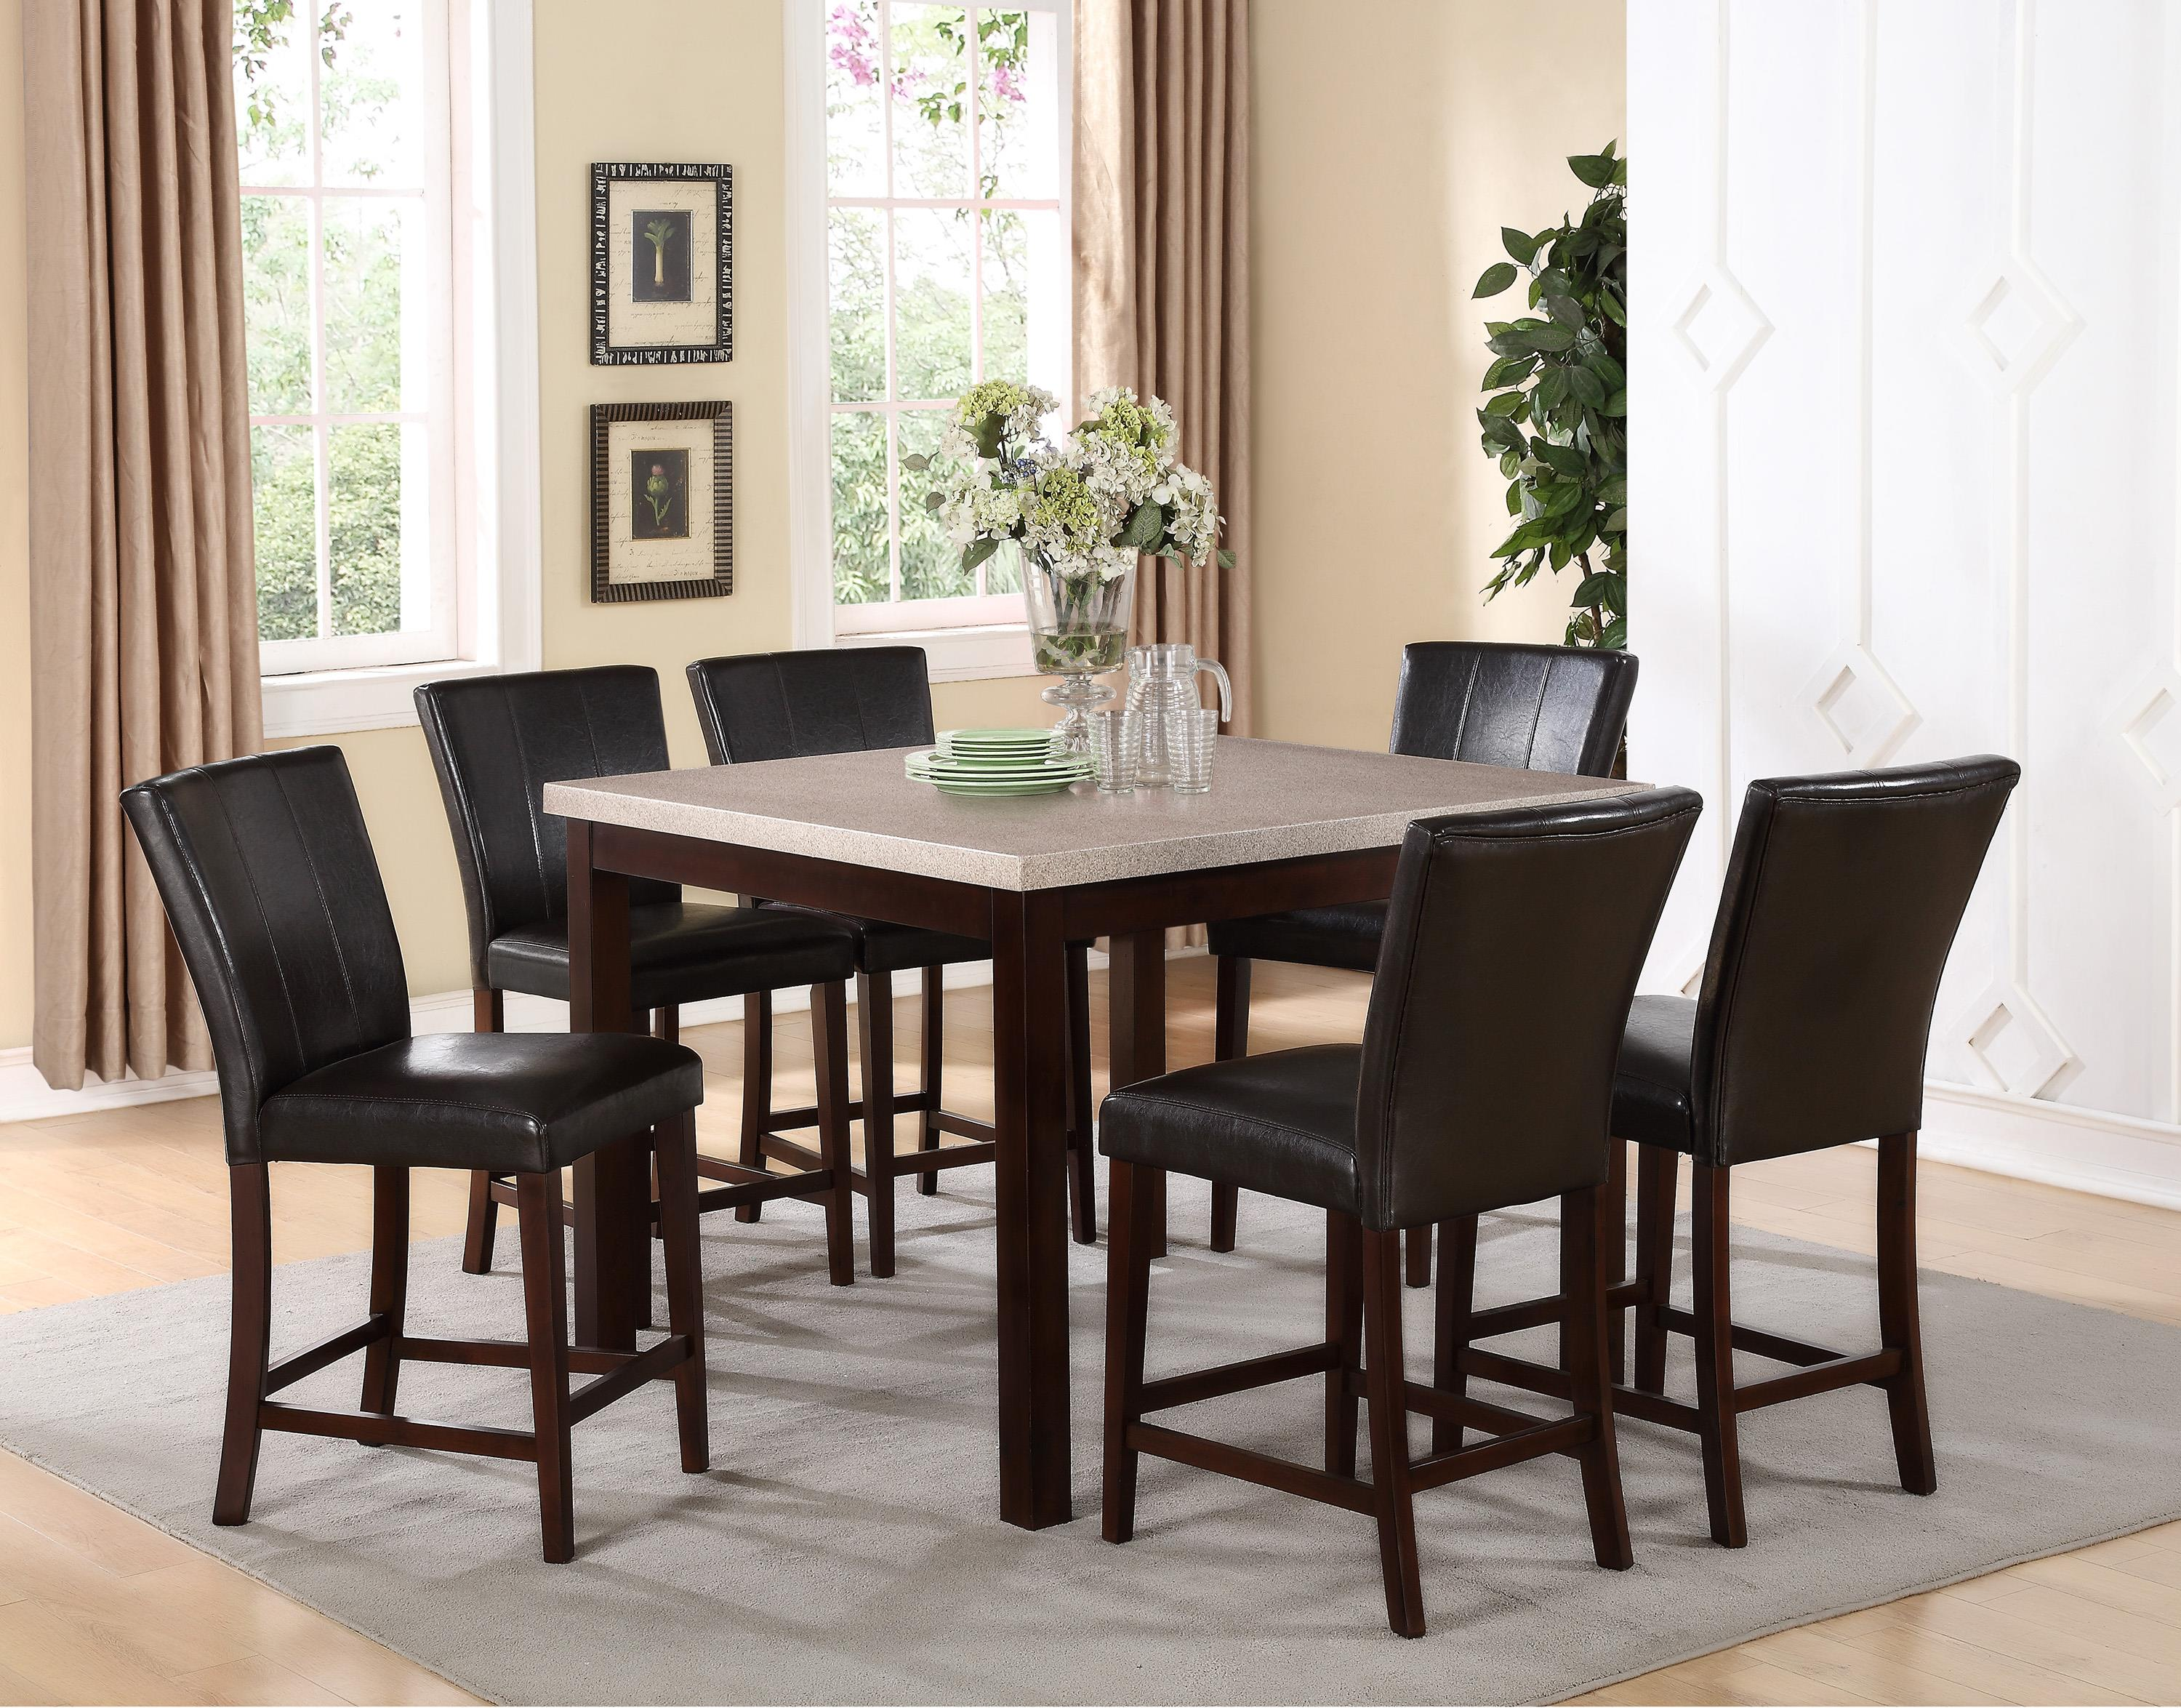 Crown Mark Dominic 7 Piece Counter Height Dining Set - Item Number: 2867T-4848+6xS-24